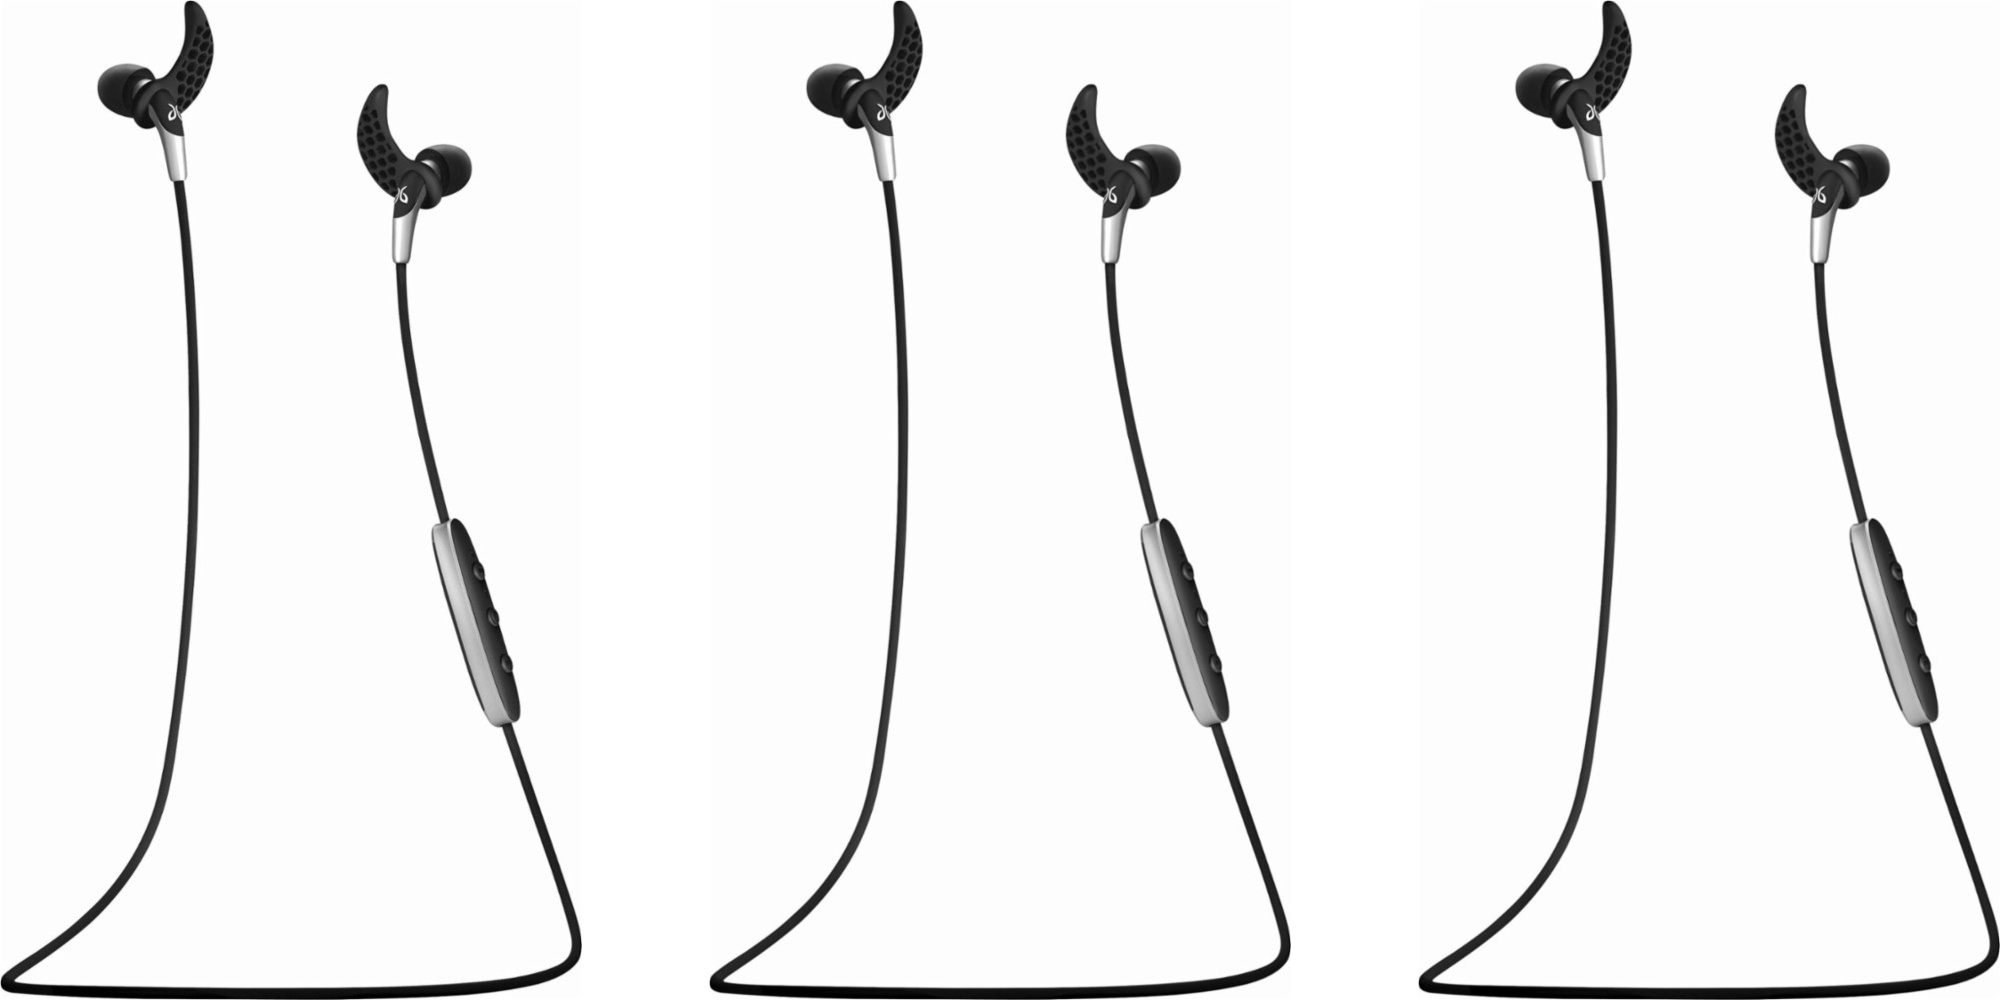 Jaybird Freedom Wireless Headphones drop to highly-anticipated $50 price, more